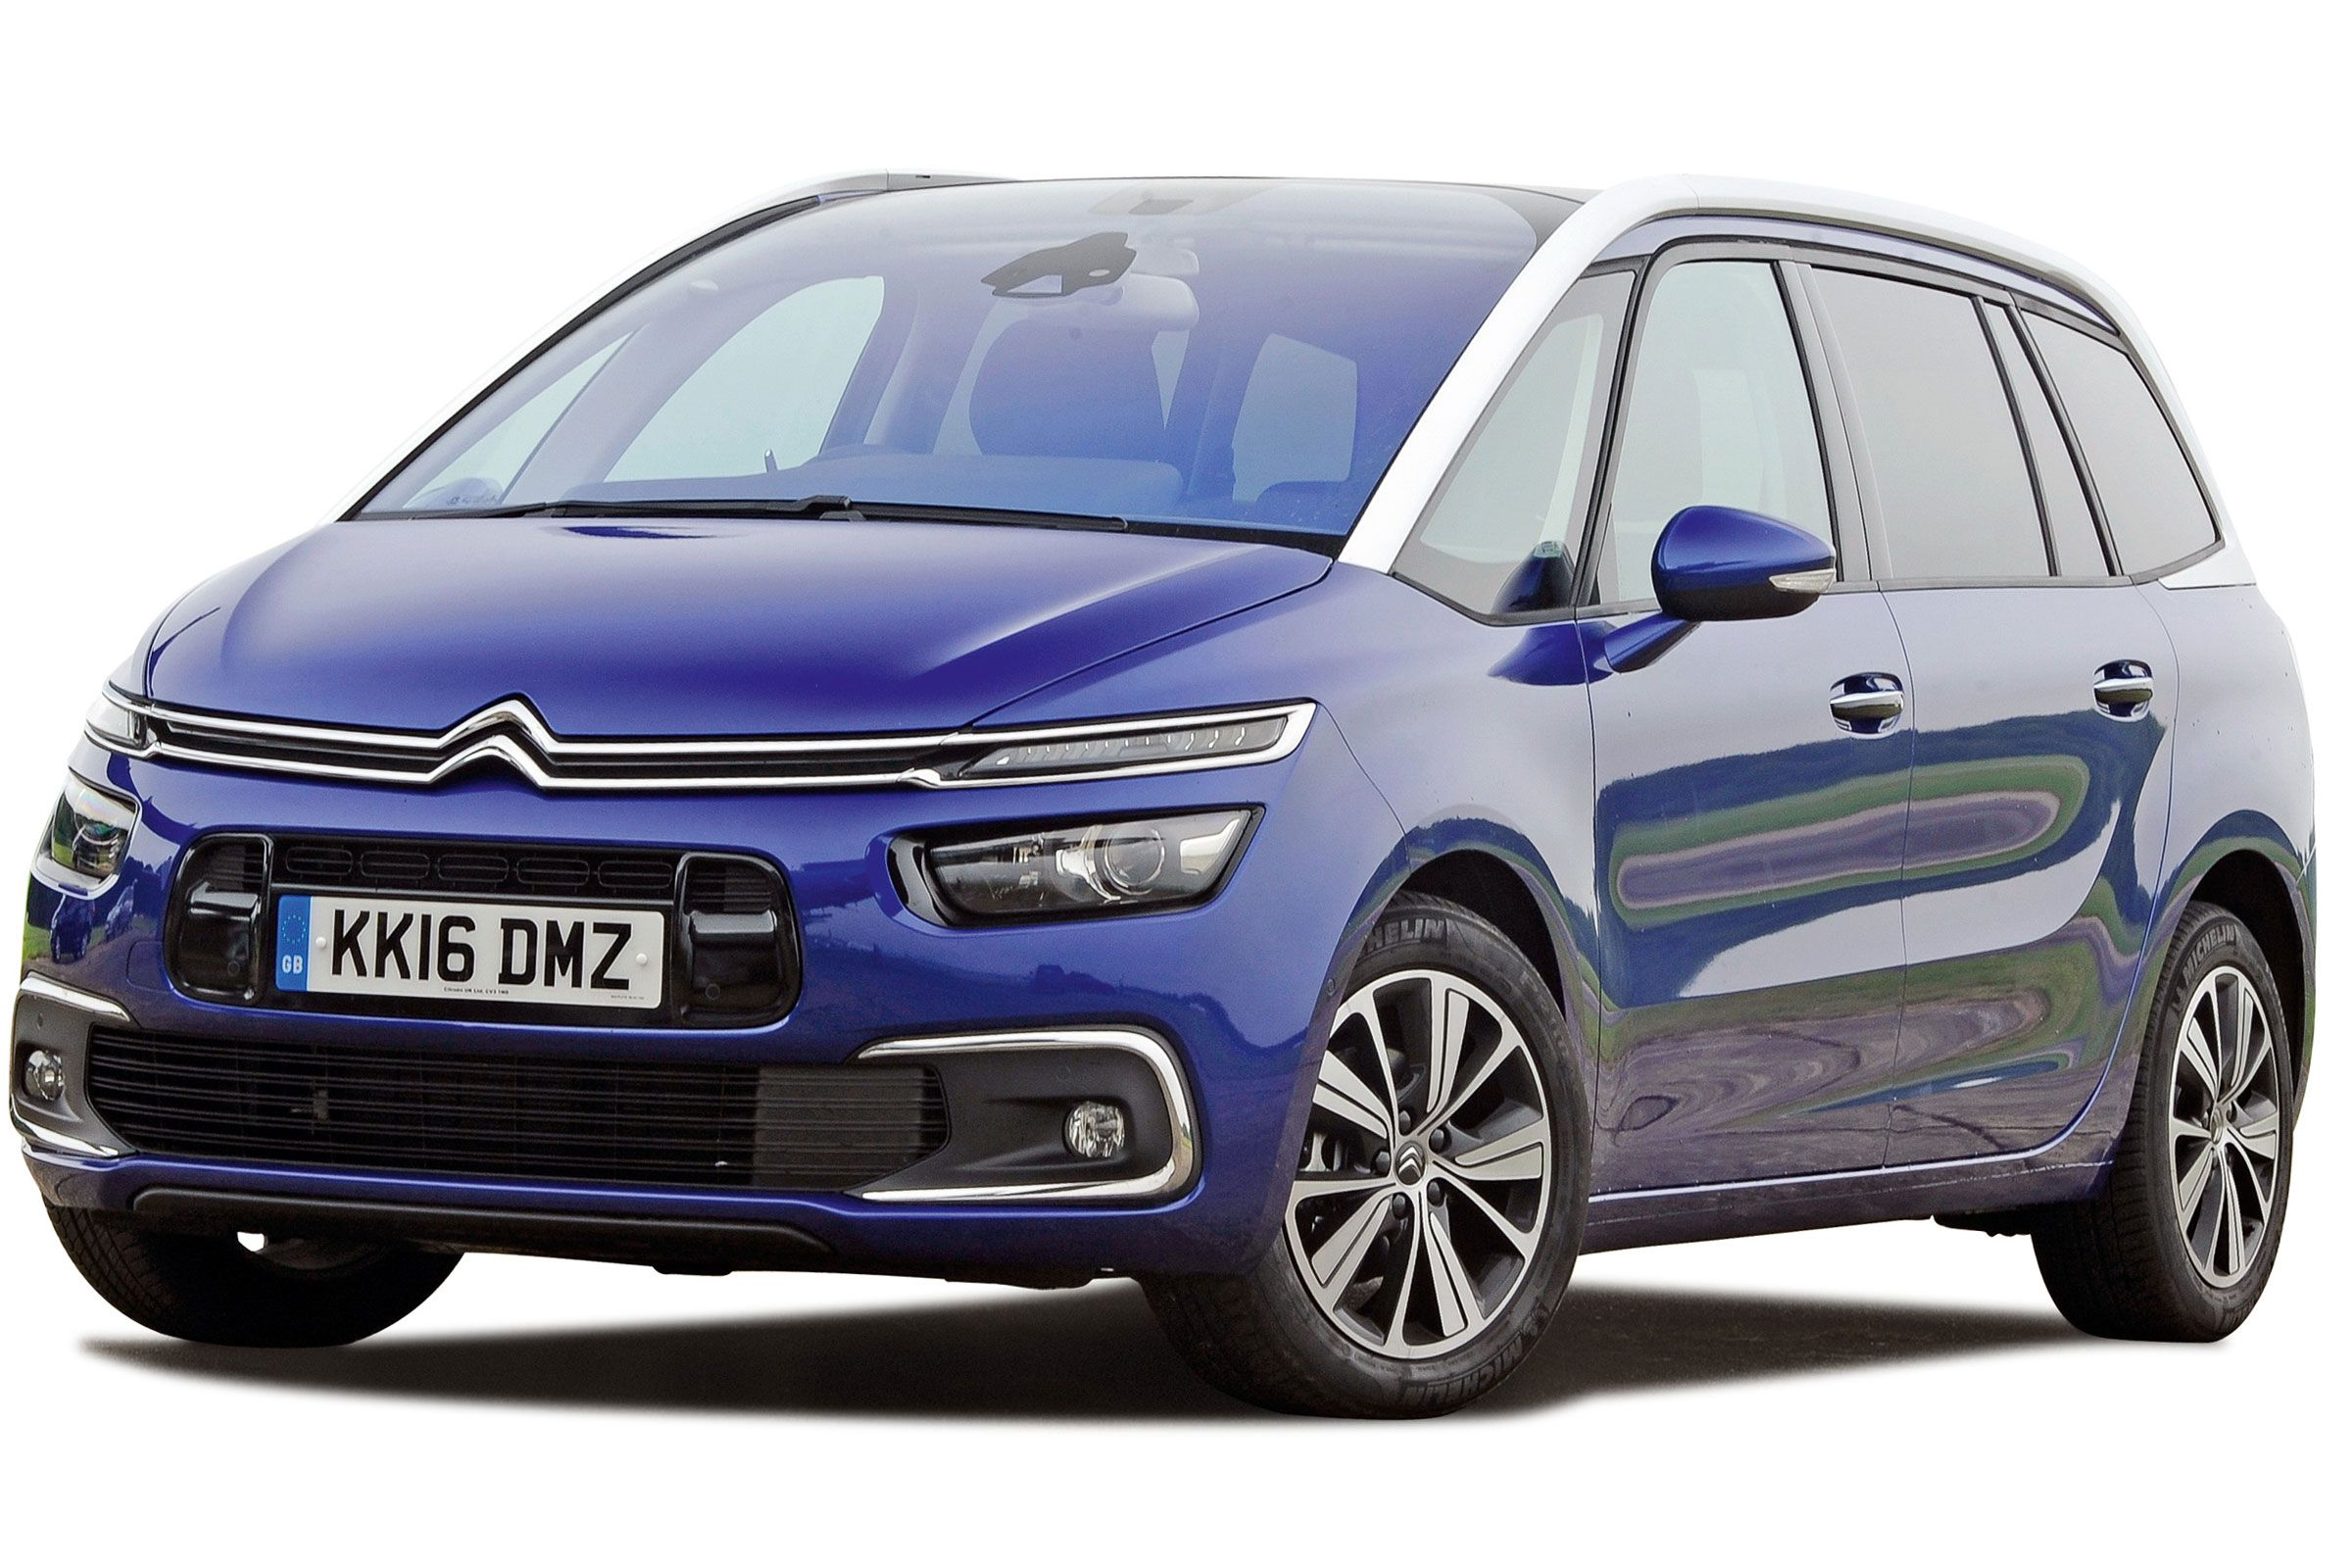 The Citroen Grand C4 Picasso Is The Largest MPV In The French